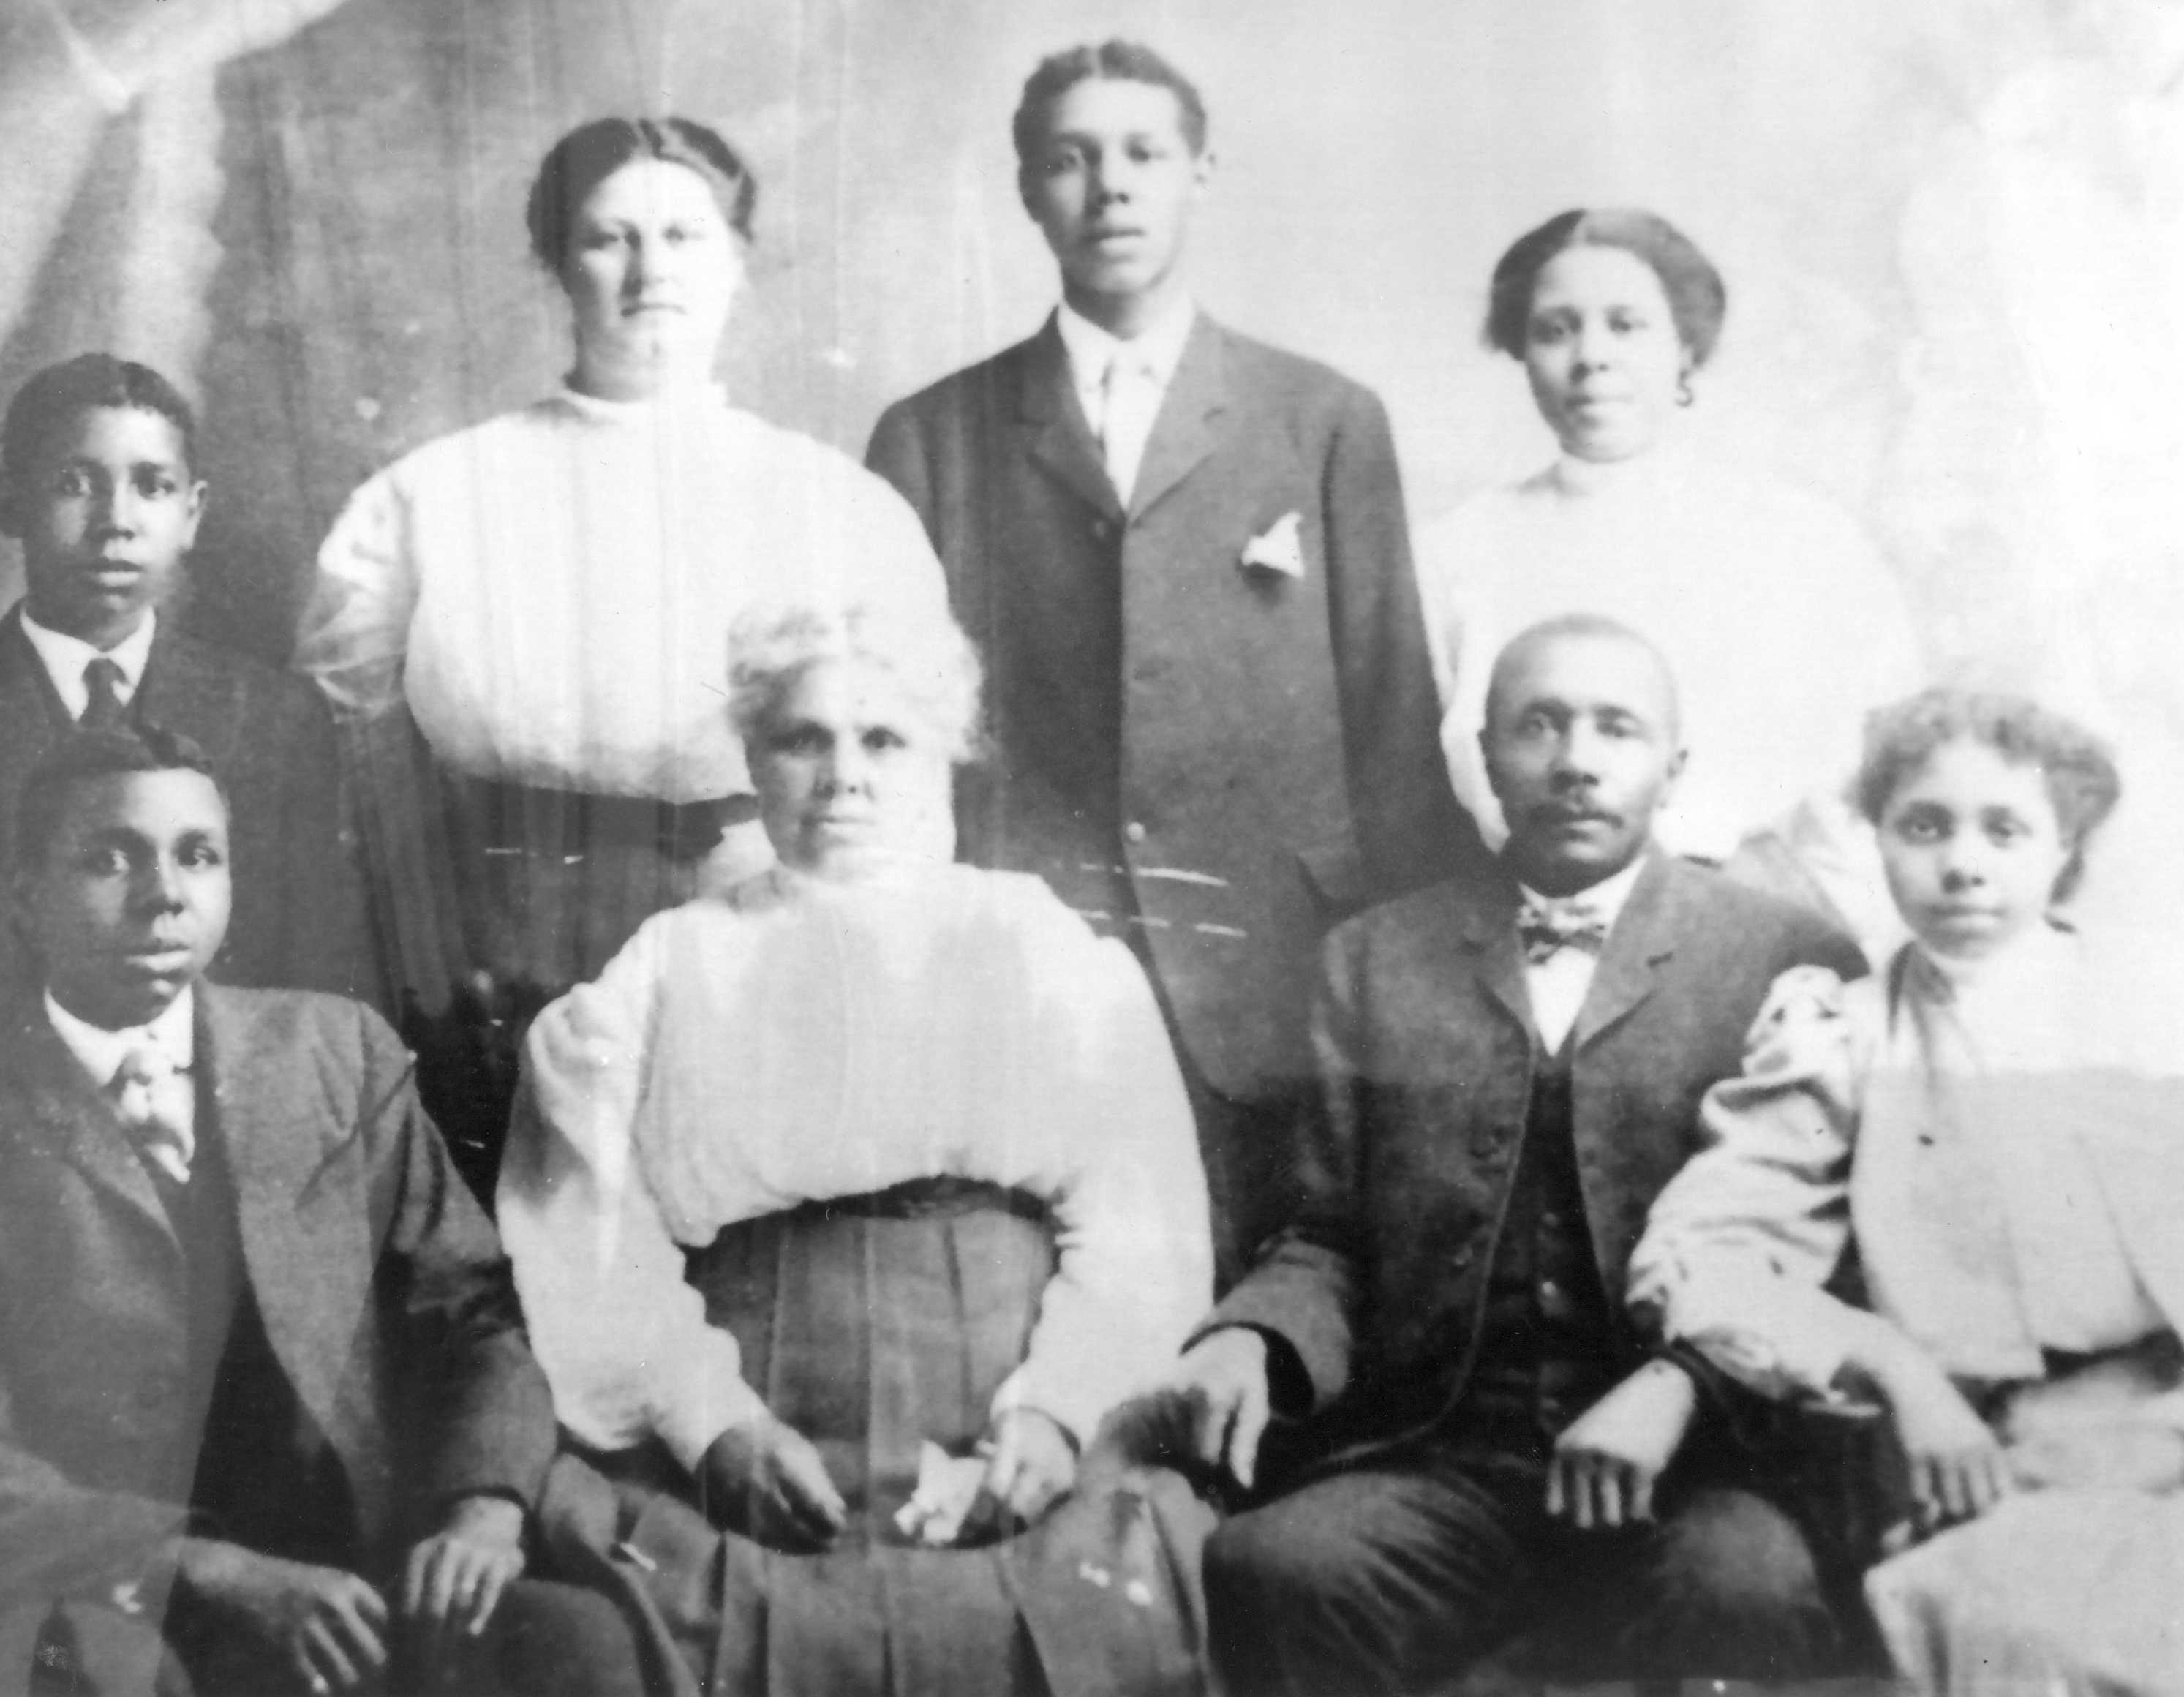 BHM: Substitute teacher traces family to prominent educator in Kentucky history